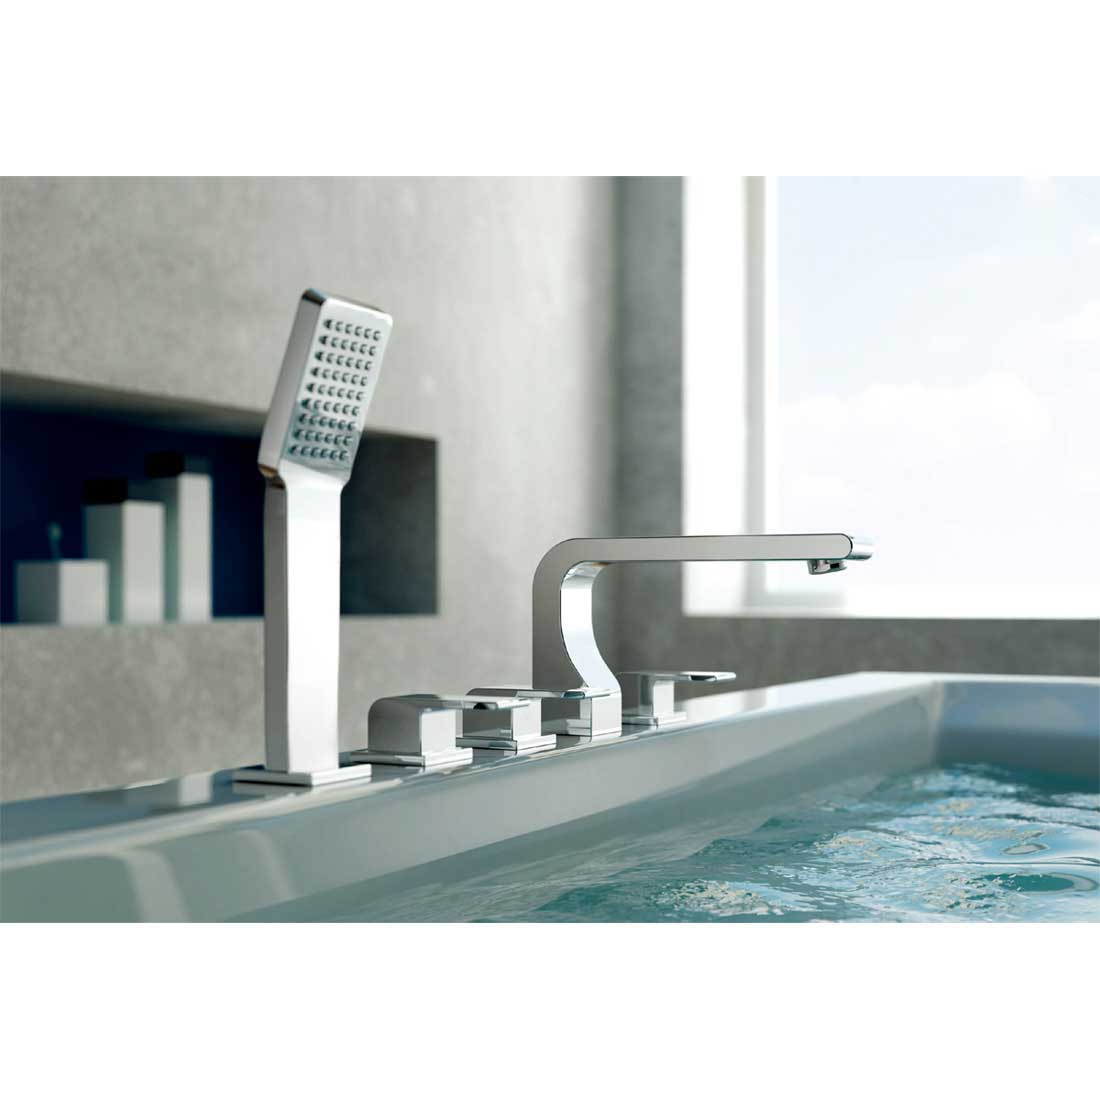 CBI Oceanus Chrome Deck Mount 5 Hole Roman Tub Shower Faucet CL JDL 8852420